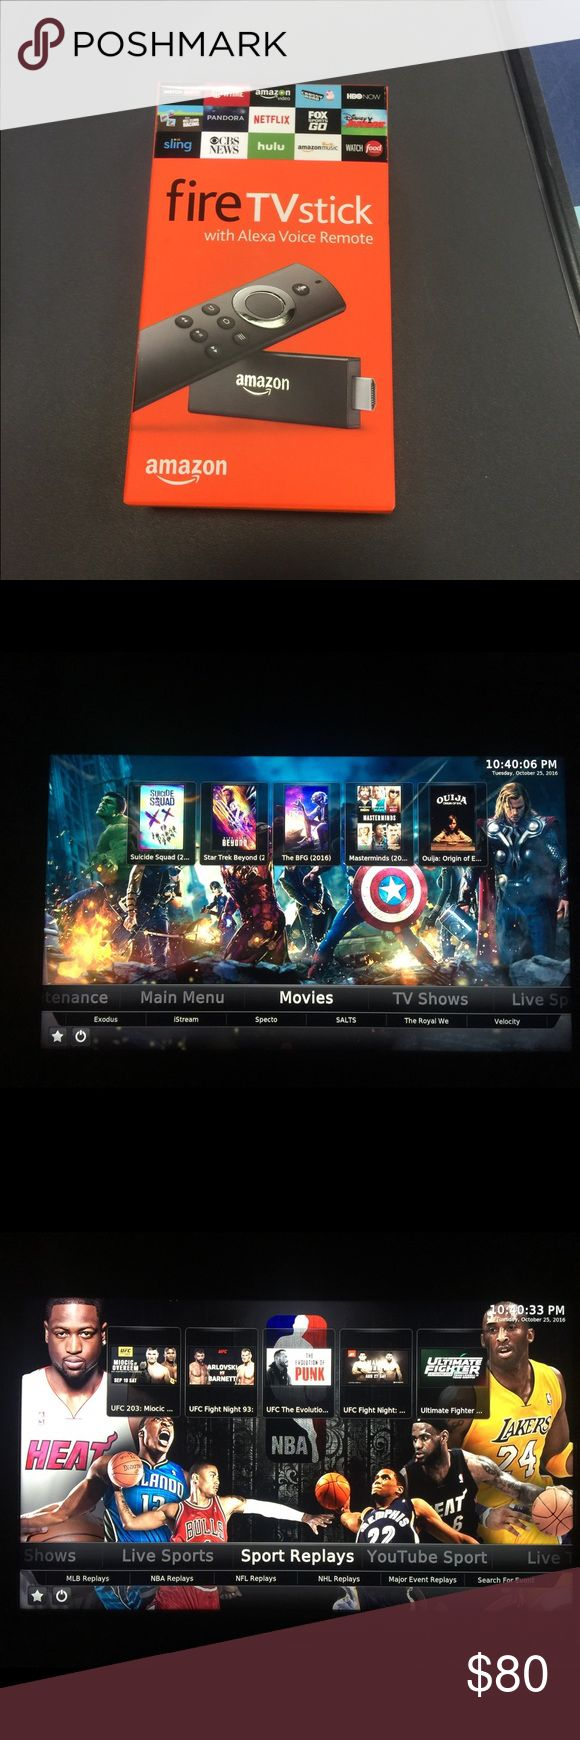 Fire stick unlocked fully loaded Unlocked  Never pay cable again Free live tv. Tv shows. Movies. UFC. Sports.   Only need hdmi port and internet.  Brand new fire stick. Just open to programed. amazon Other